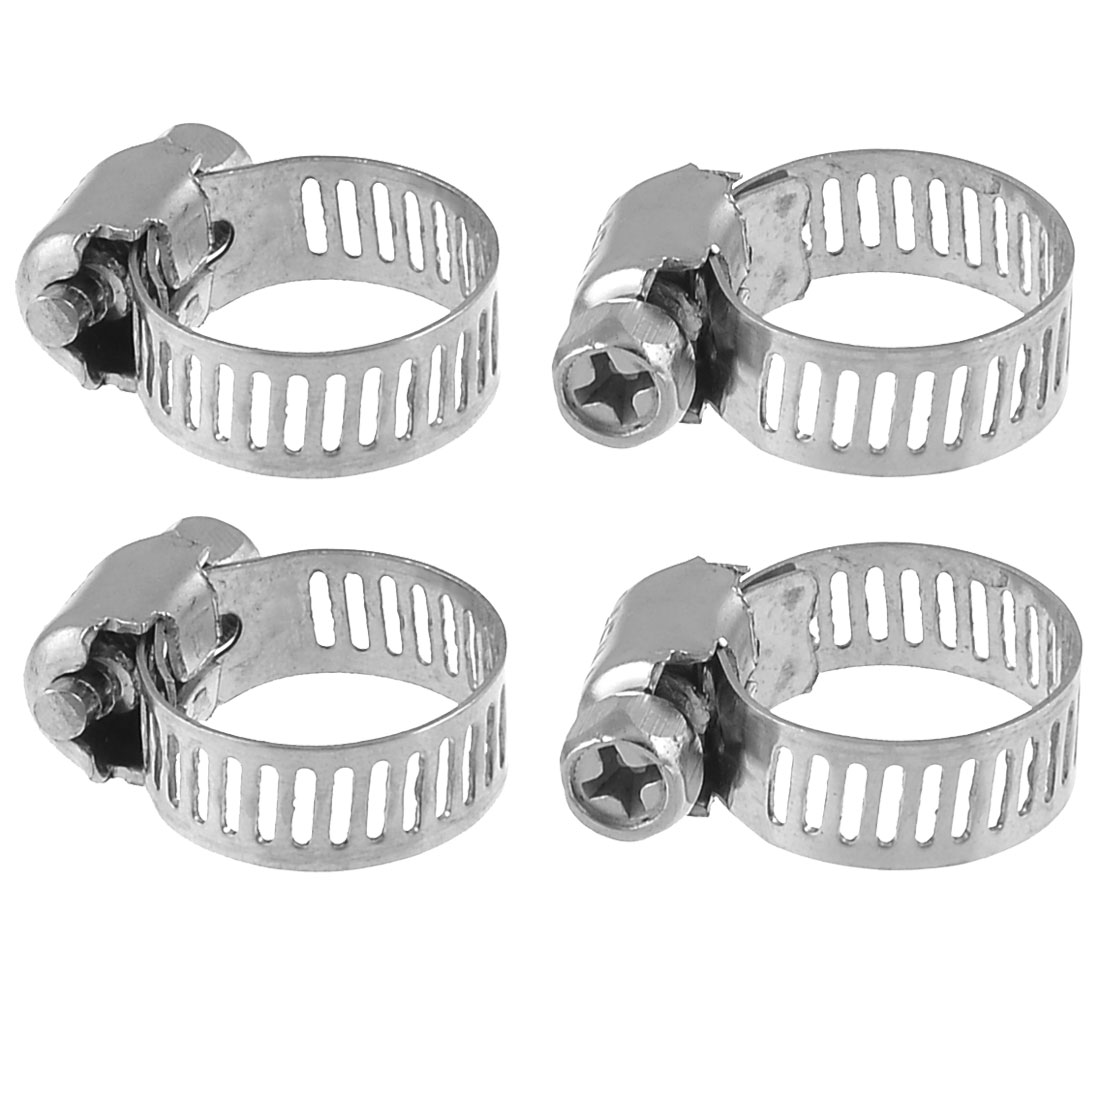 5 Pcs 9mm-16mm Range Metal Hose Clamps Gator for Worm Drive